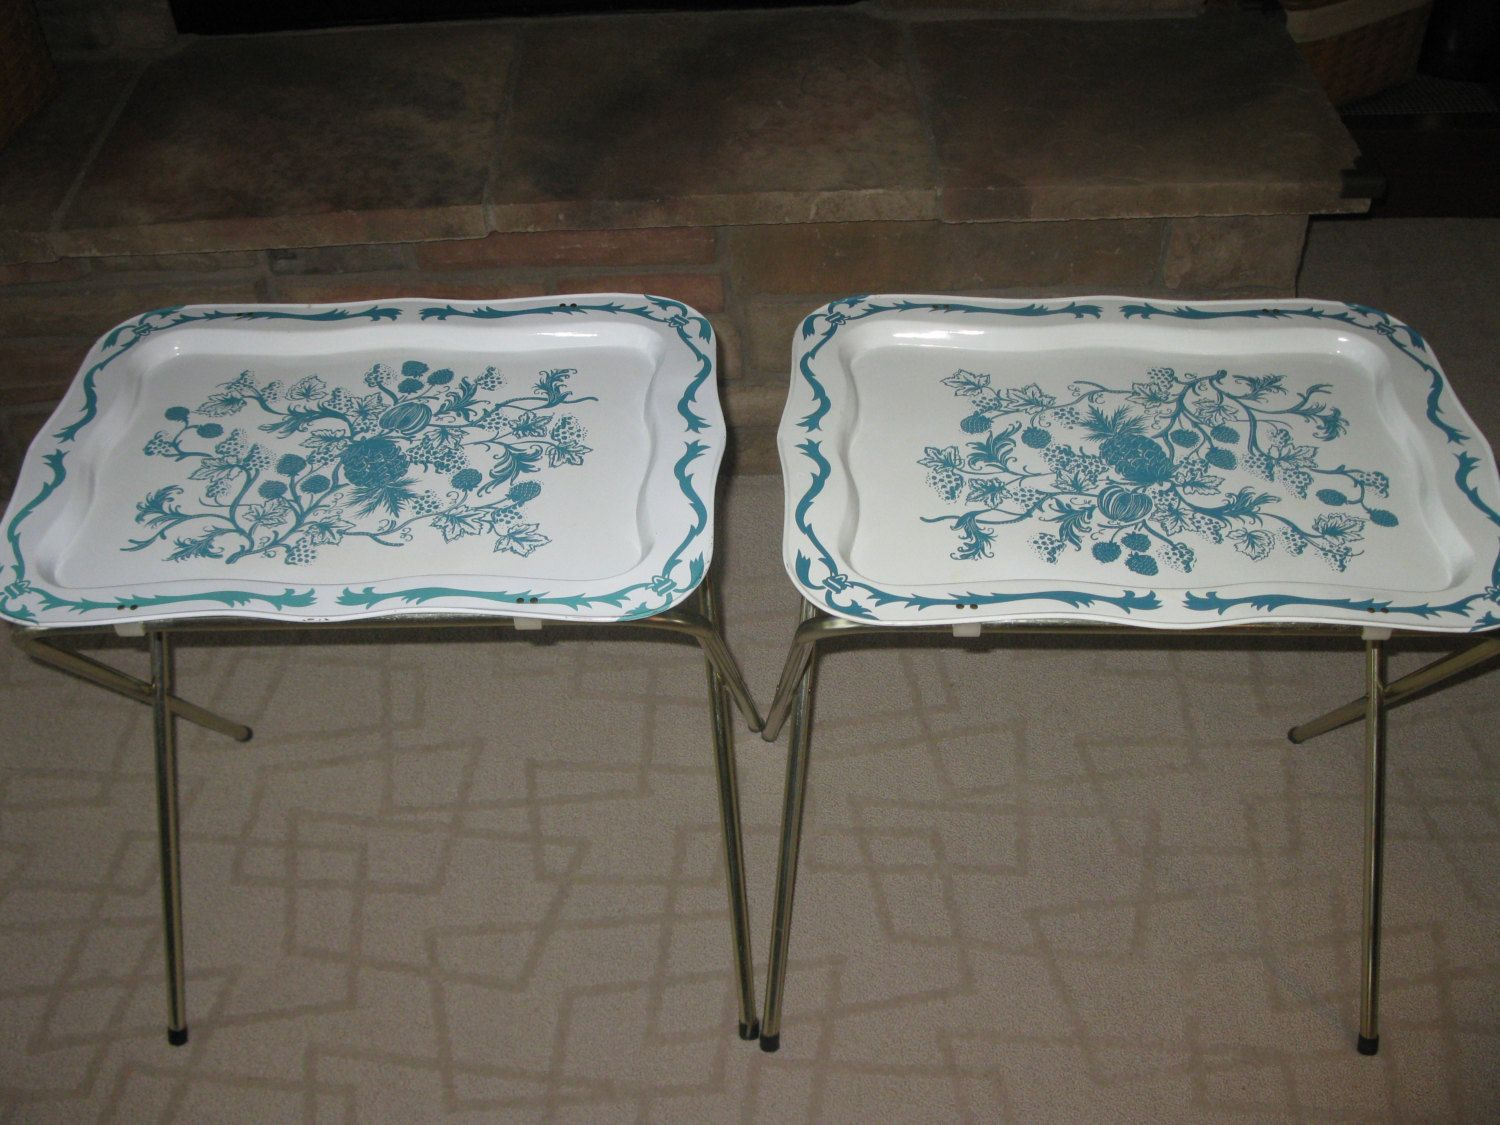 Set of 2 Metal TV Trays- 1960s - Floral Design- White and ...